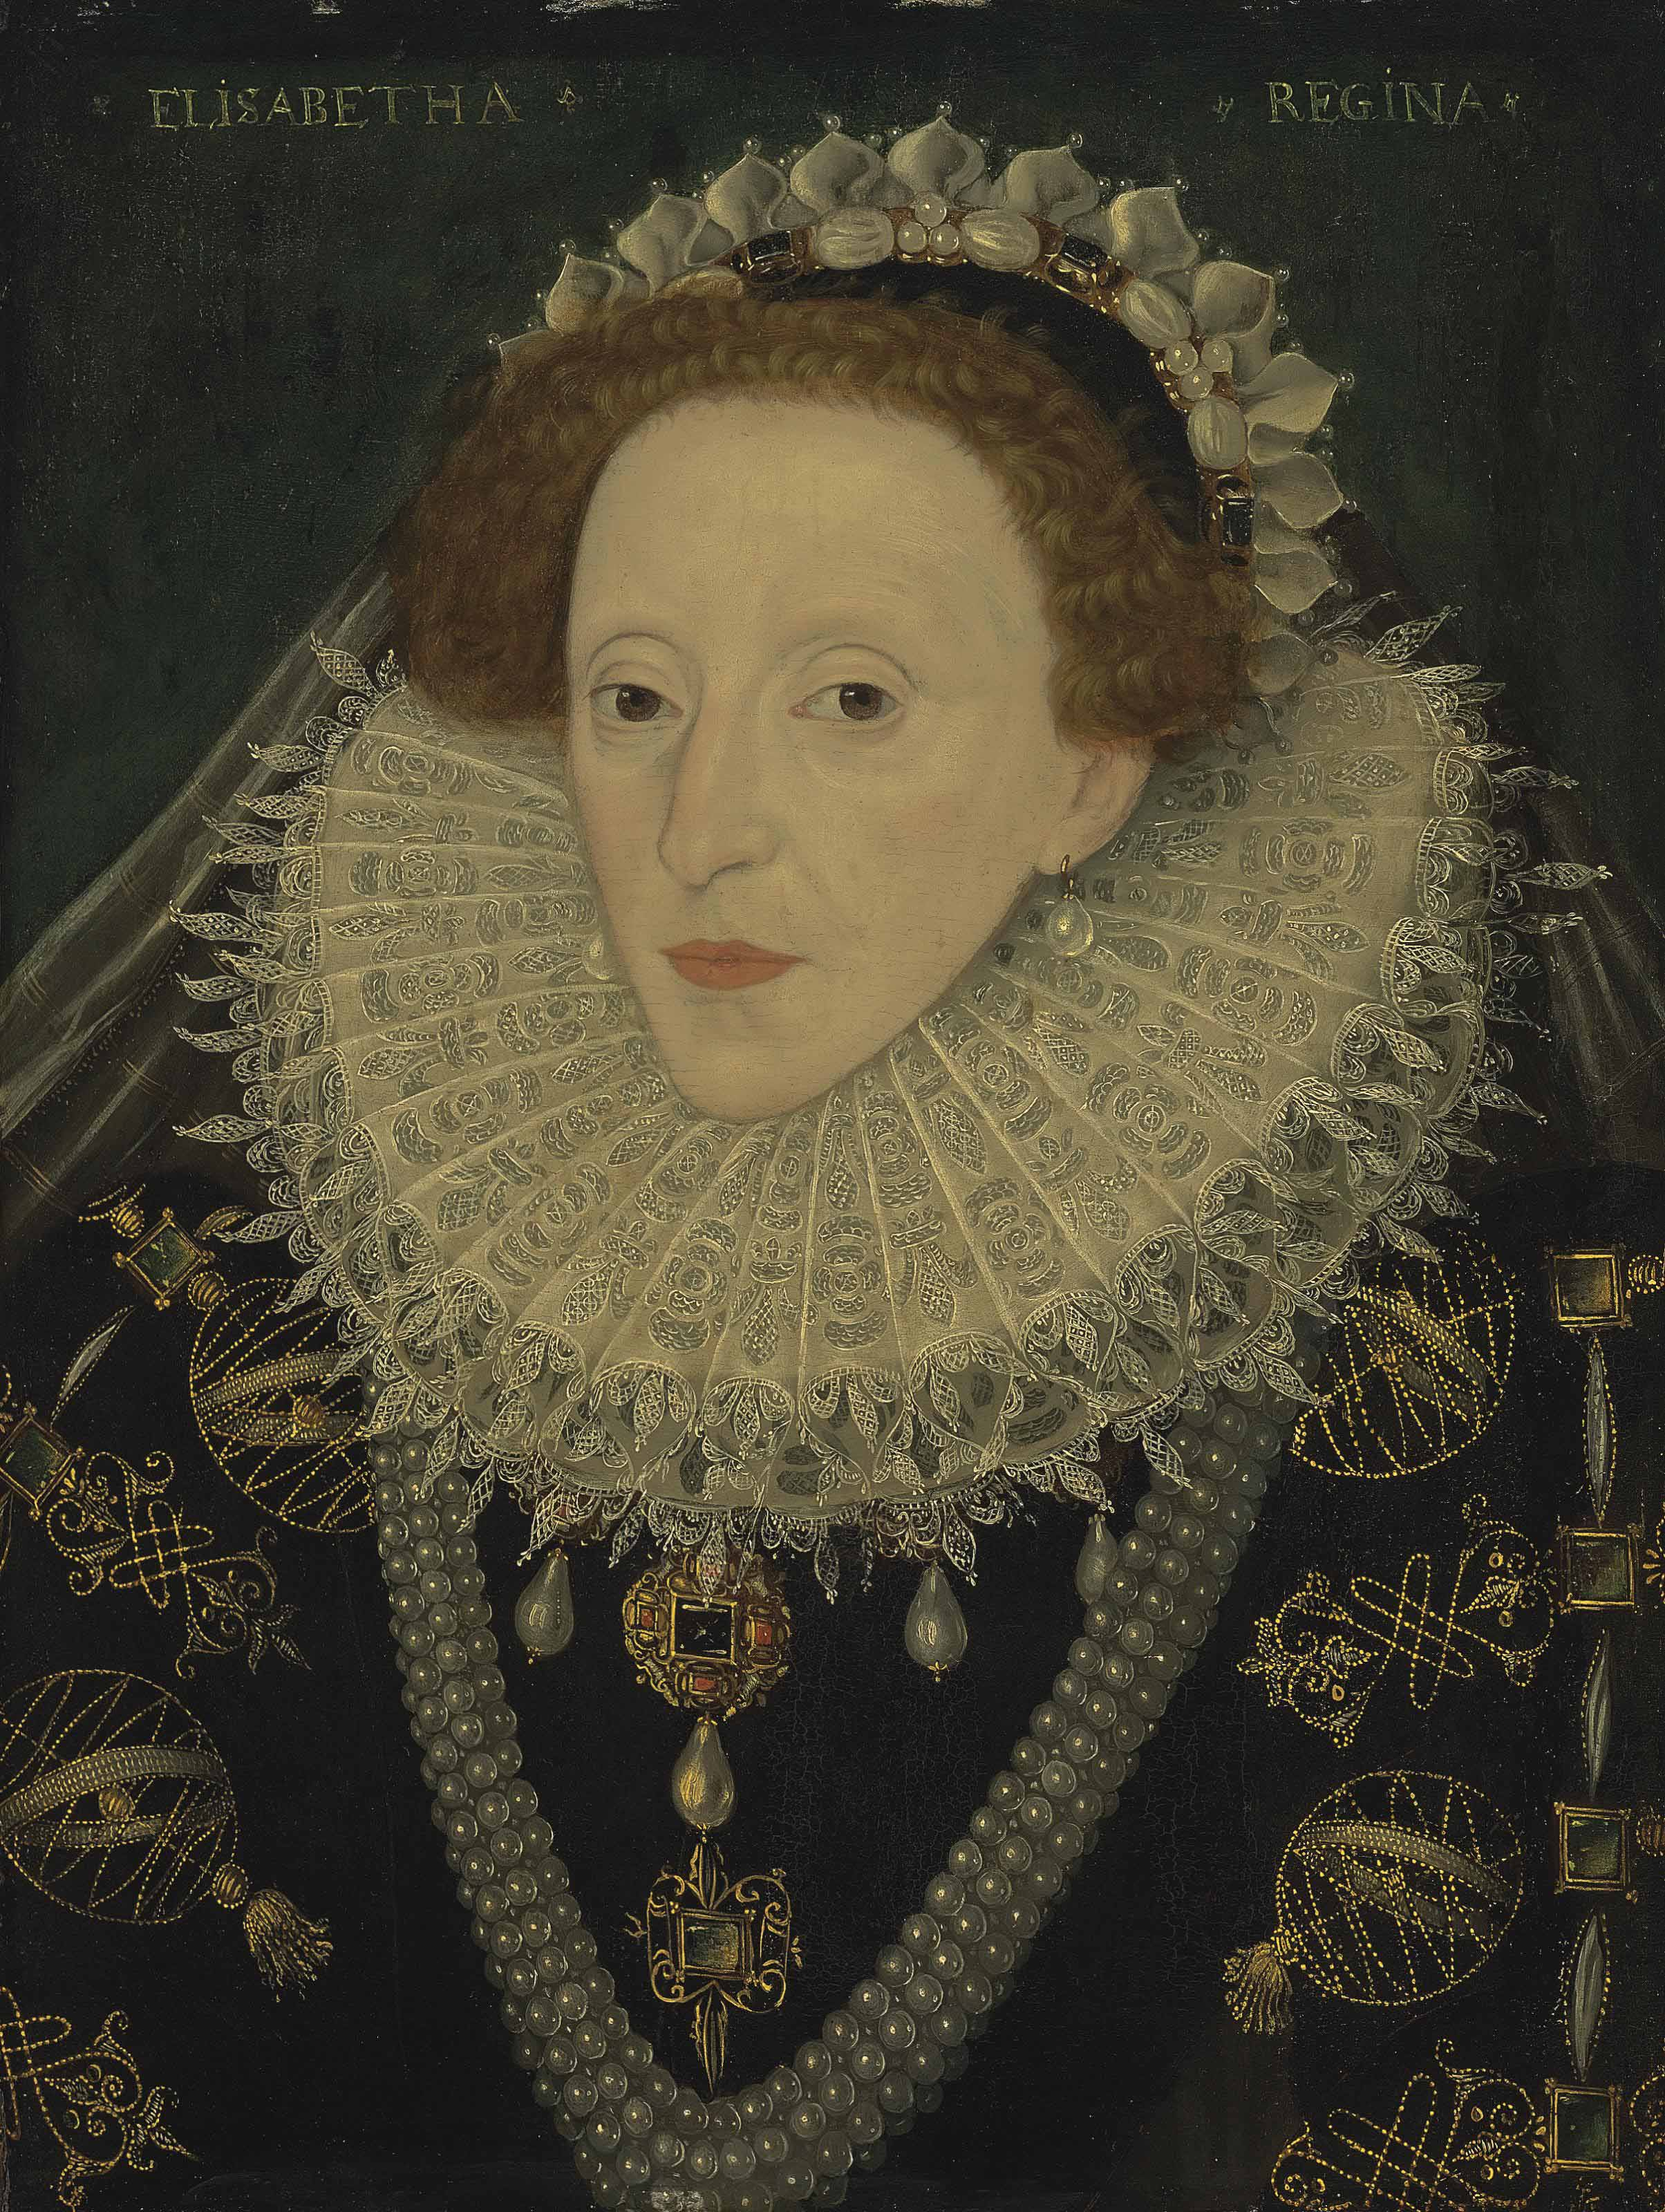 Portrait of Queen Elizabeth I (1533-1603), half-length, in a black gold embroidered and bejewelled dress with armillary spheres, a lace ruff, a bejewelled headdress and a veil